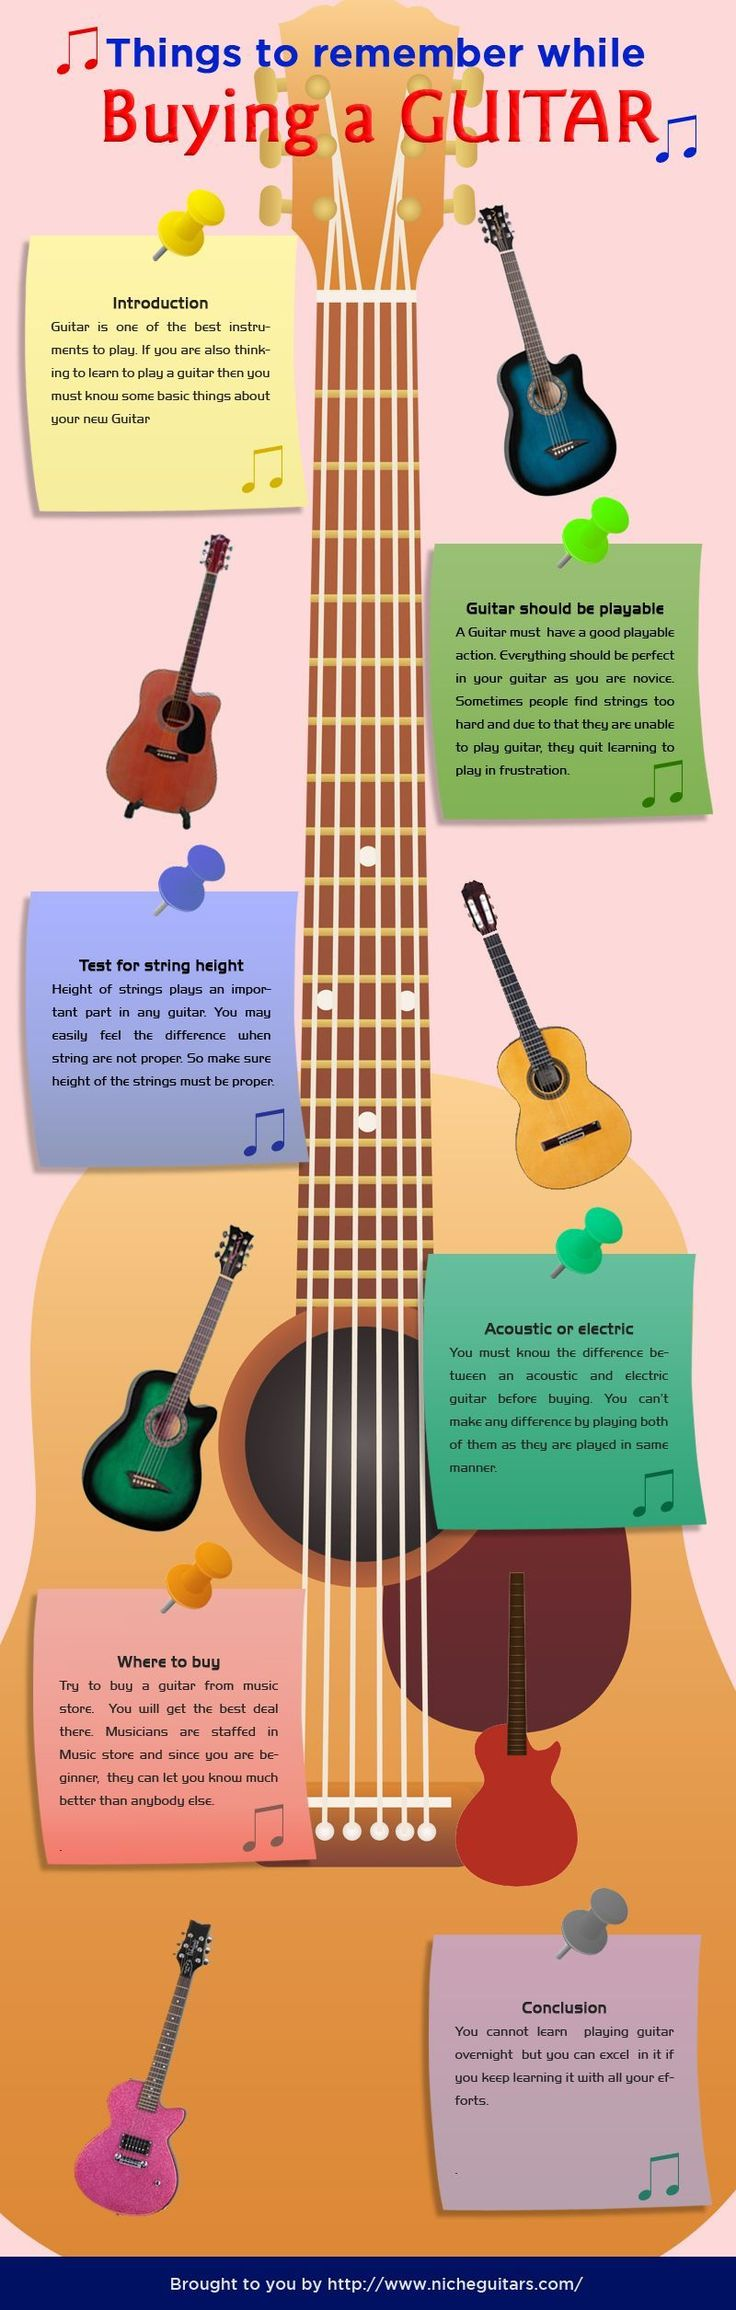 things-to-remember-while-buying-a-guitar-infographic. Just come to Music Mart in Solana Beach, CA - we have the best Acoustic & Electric, and we even have a great on-site guitar instructor :) #electricguitar